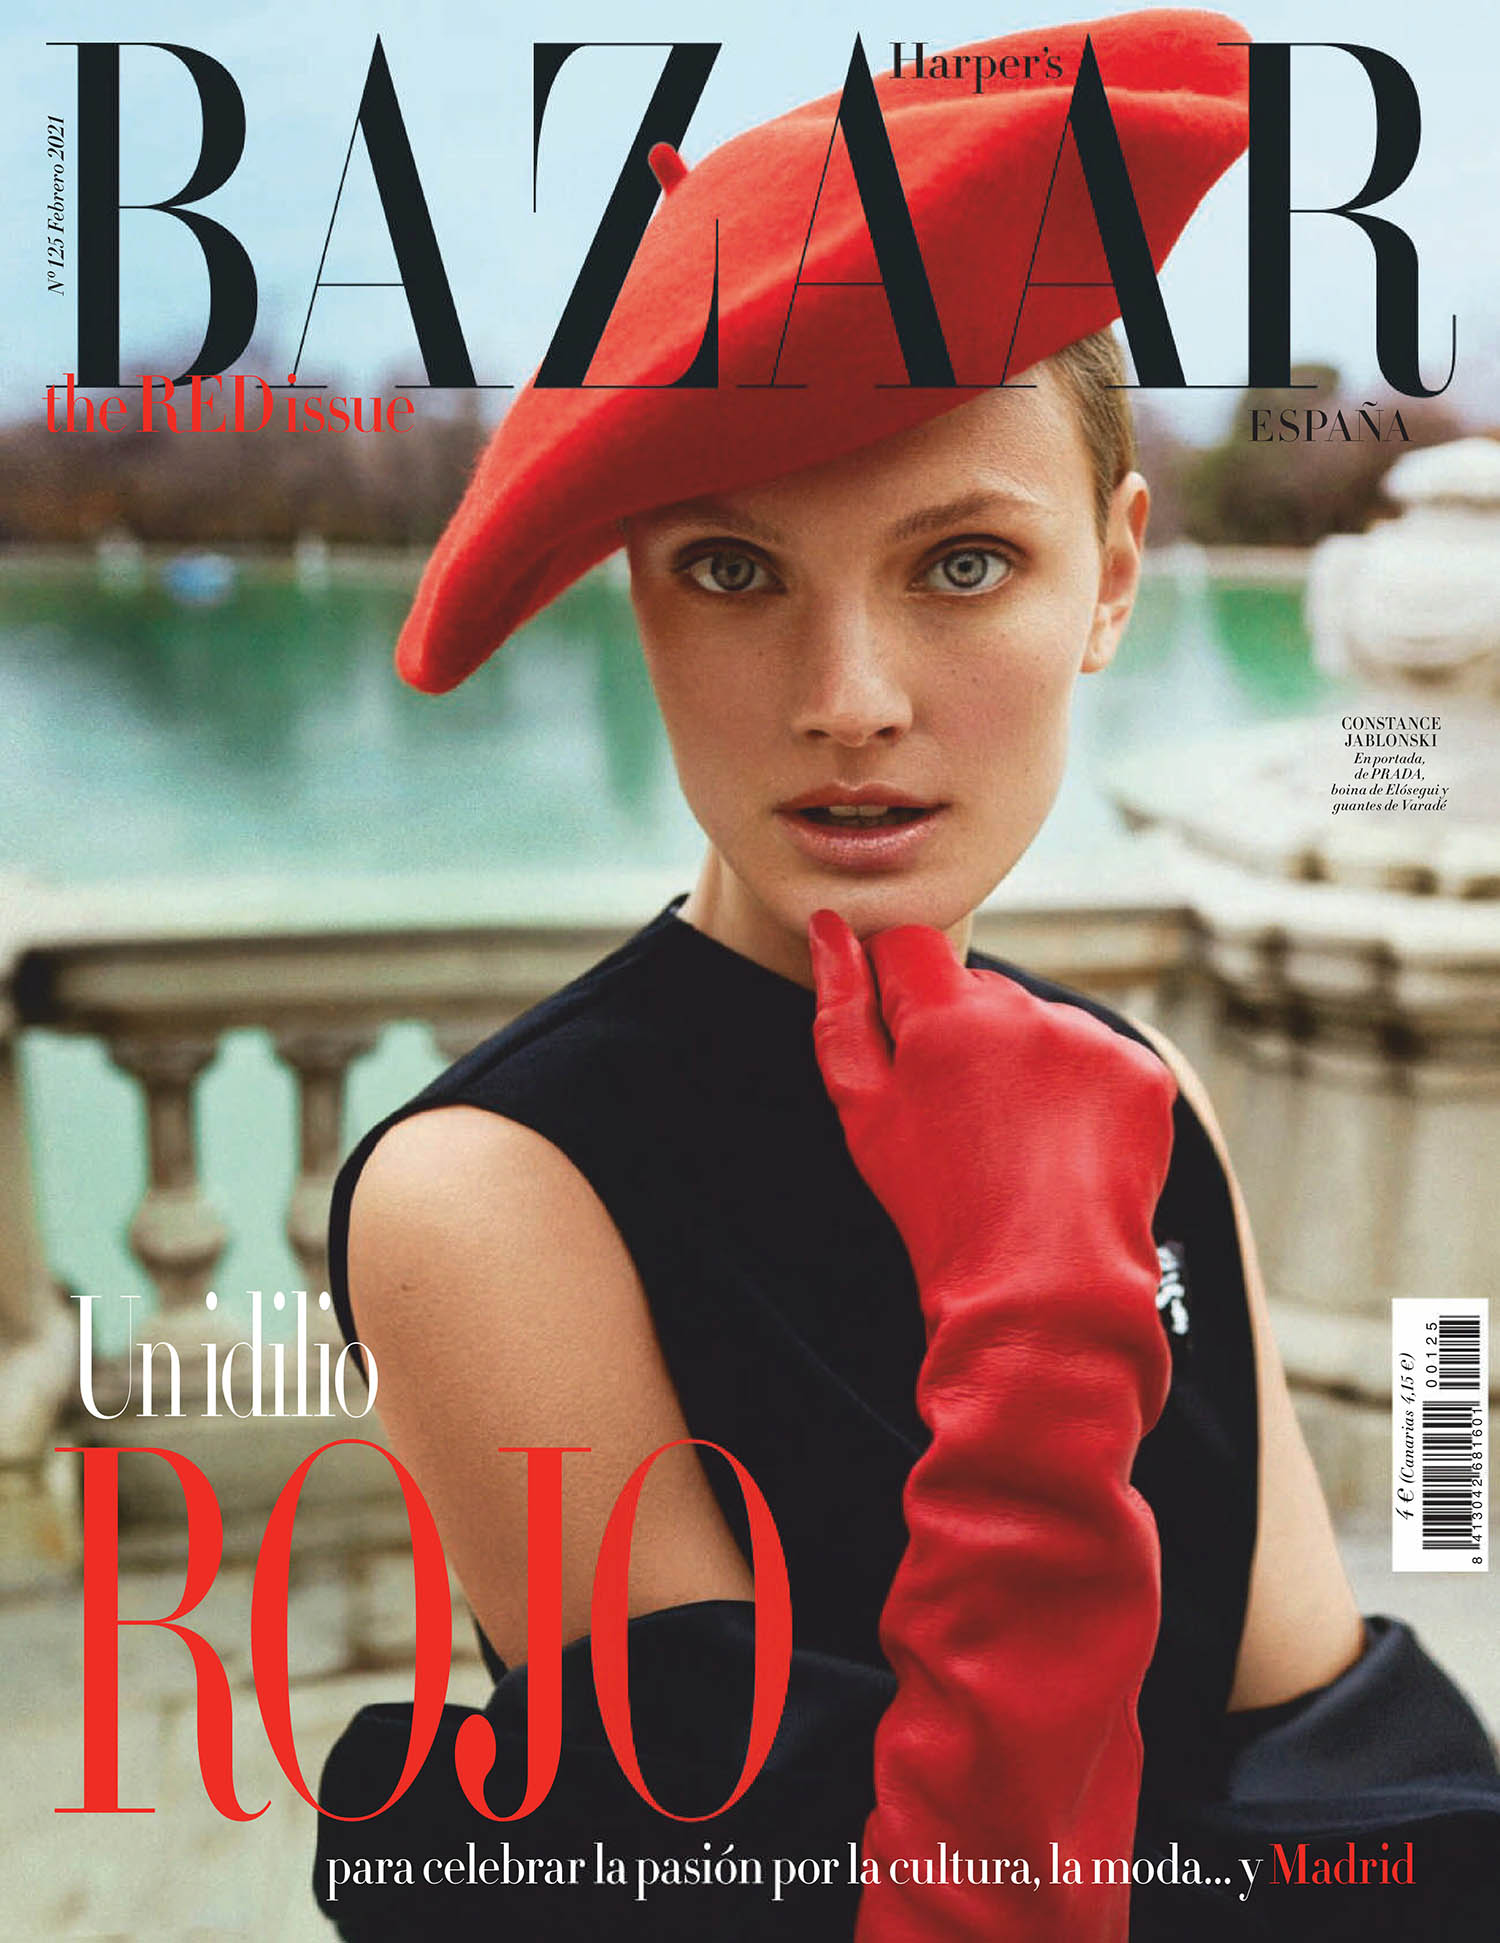 Constance Jablonski covers Harper's Bazaar Spain February 2021 by Xavi Gordo